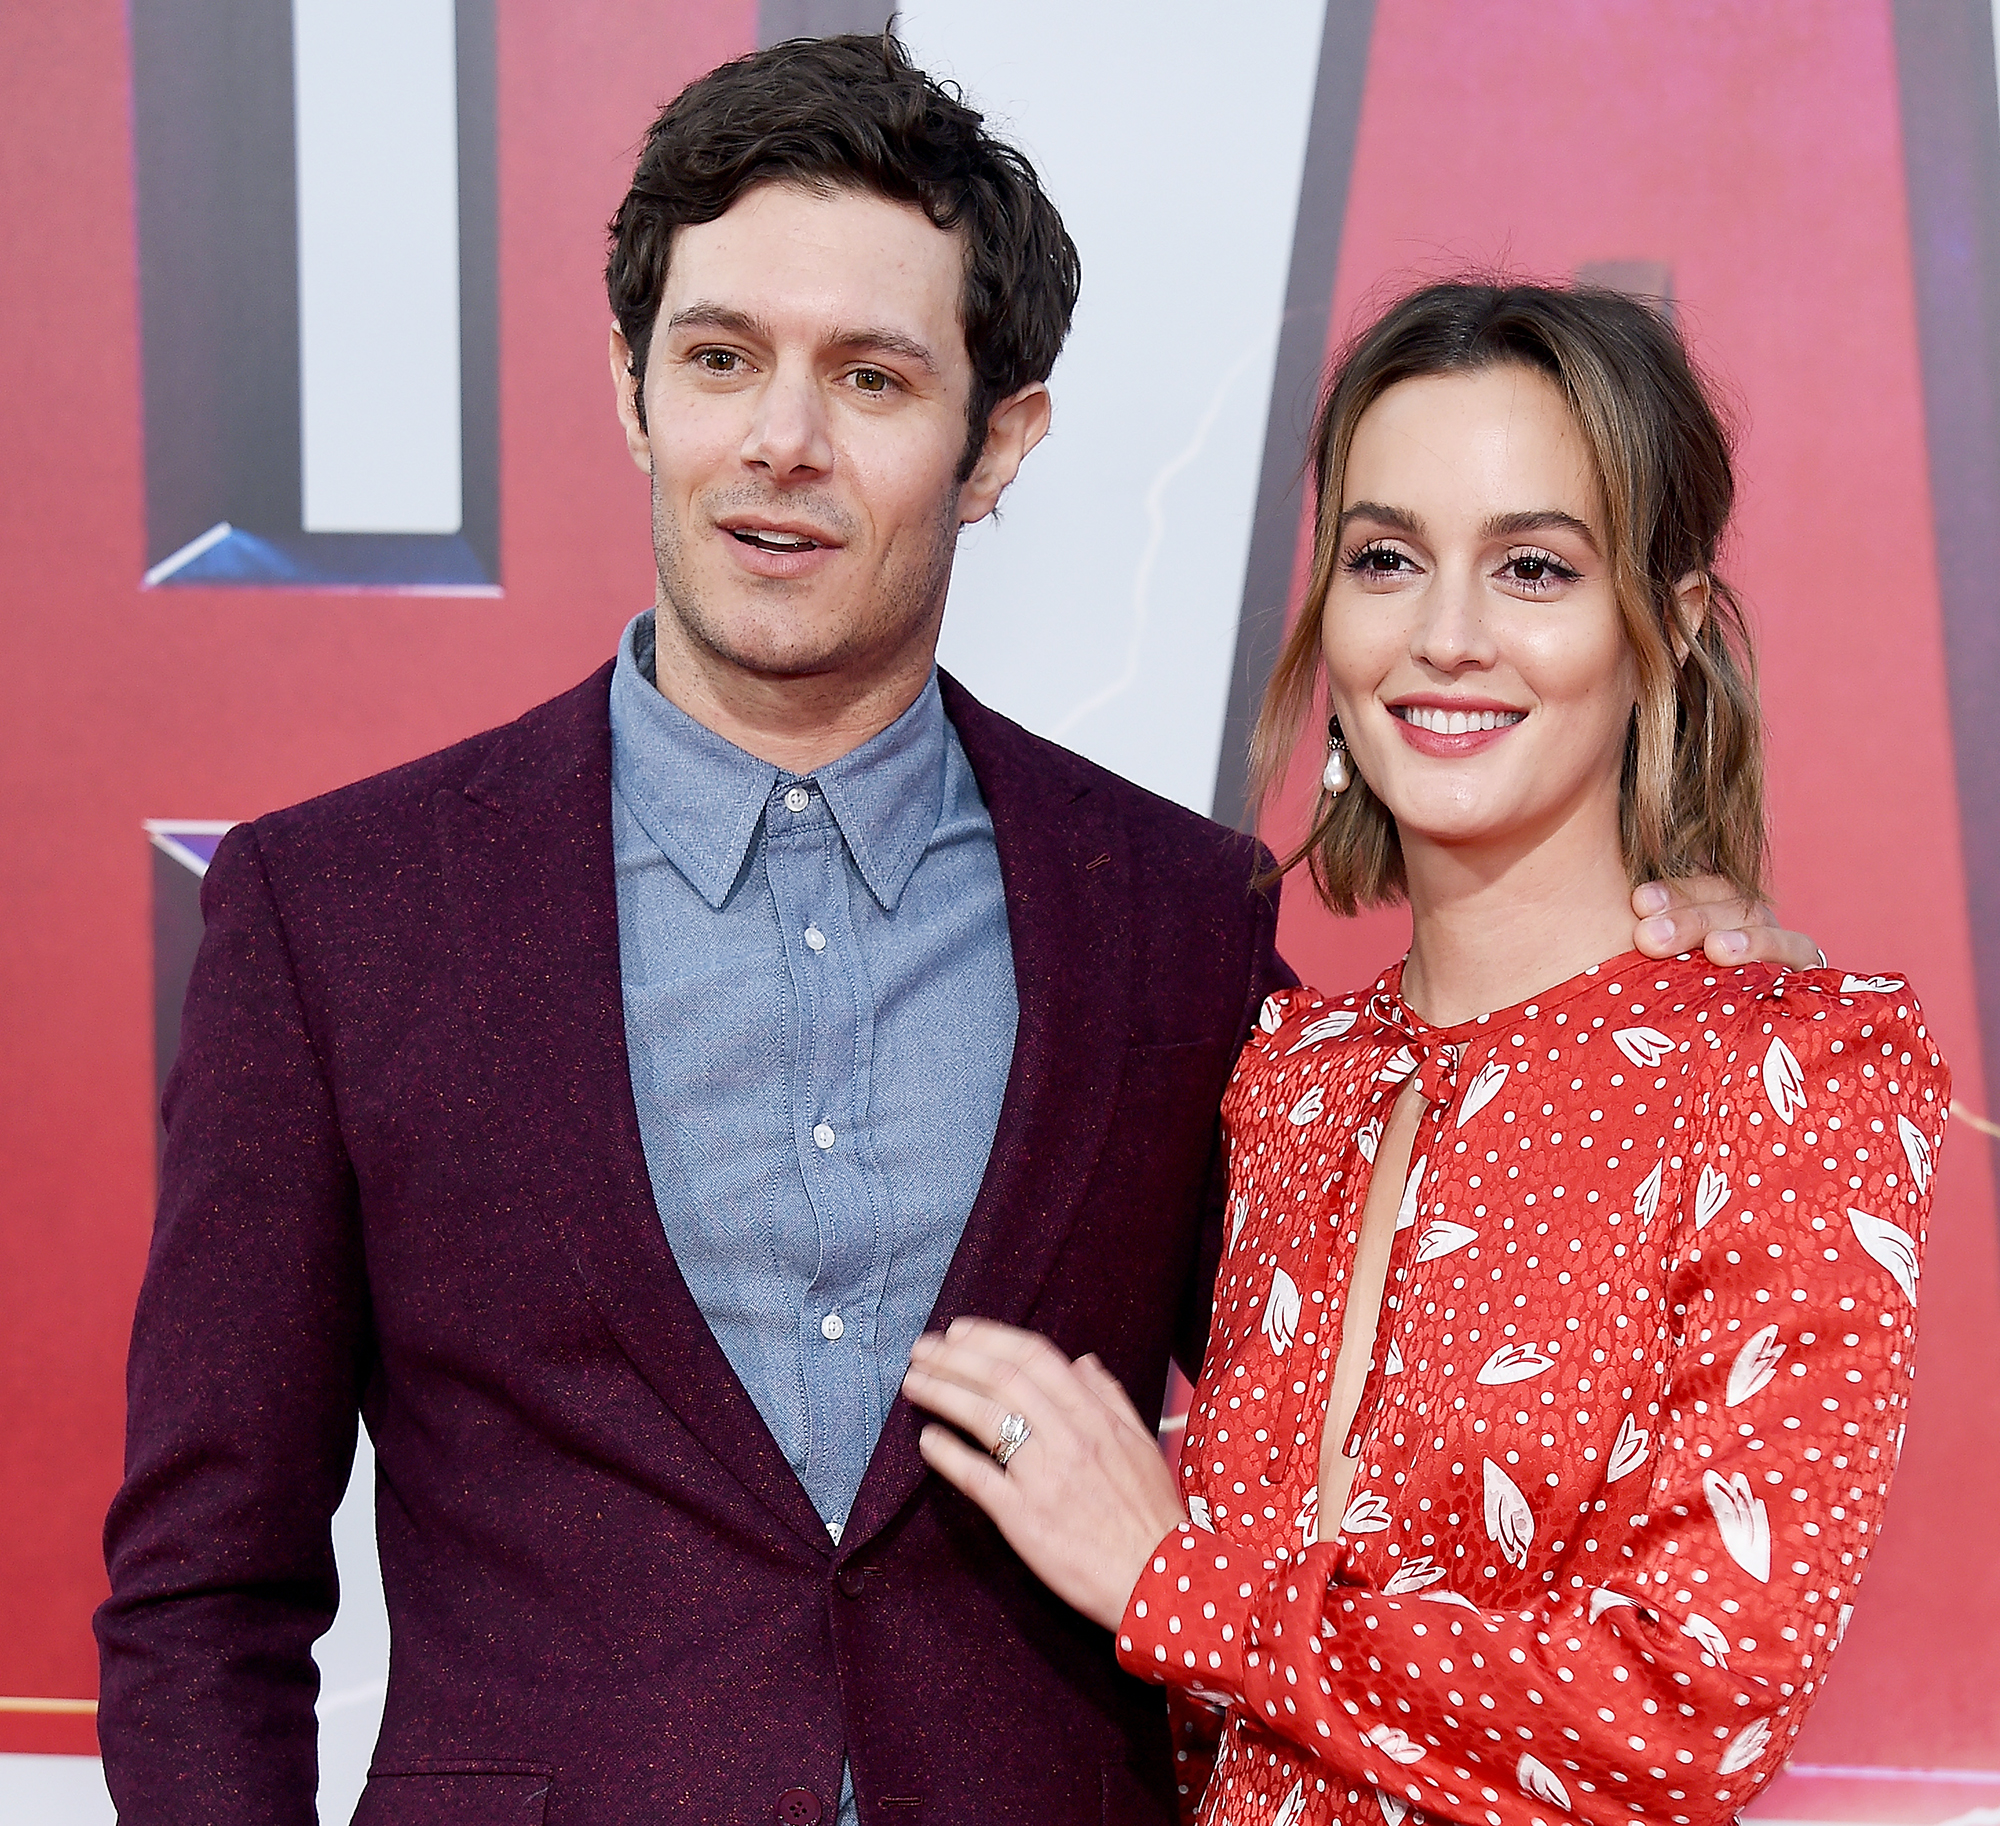 """Leighton Meester and Adam Brody Steal the Show on Their First Red Carpet in More Than 2 Years - The Monte Carlo actress shared how she connected to her Single Parents alter-ego . """"I think the character is similar to me in a lot of ways and being a mom and being able to come in and have those experiences and bring it to my work is actually really important to me and it kinda feels good,"""" she told Us in August 2018."""